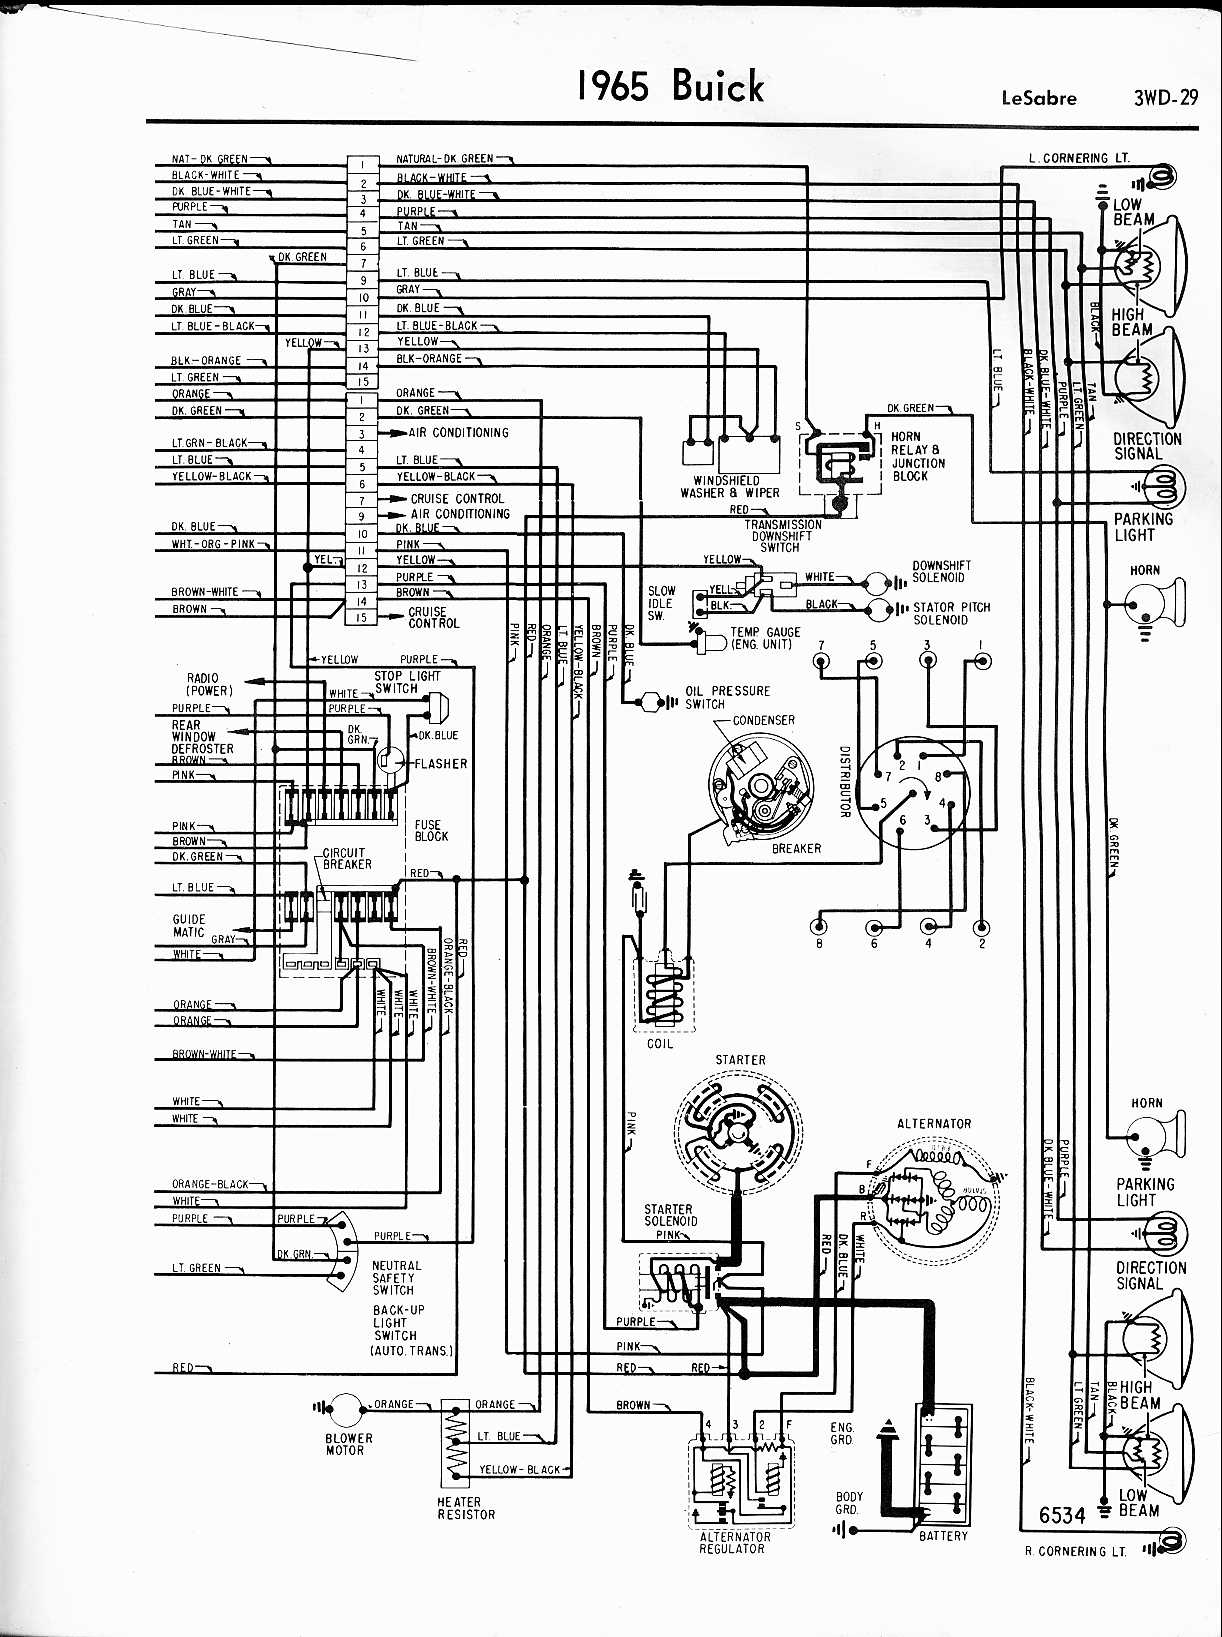 Wiring Diagram 96 Buick Century - wiring diagram on the net on